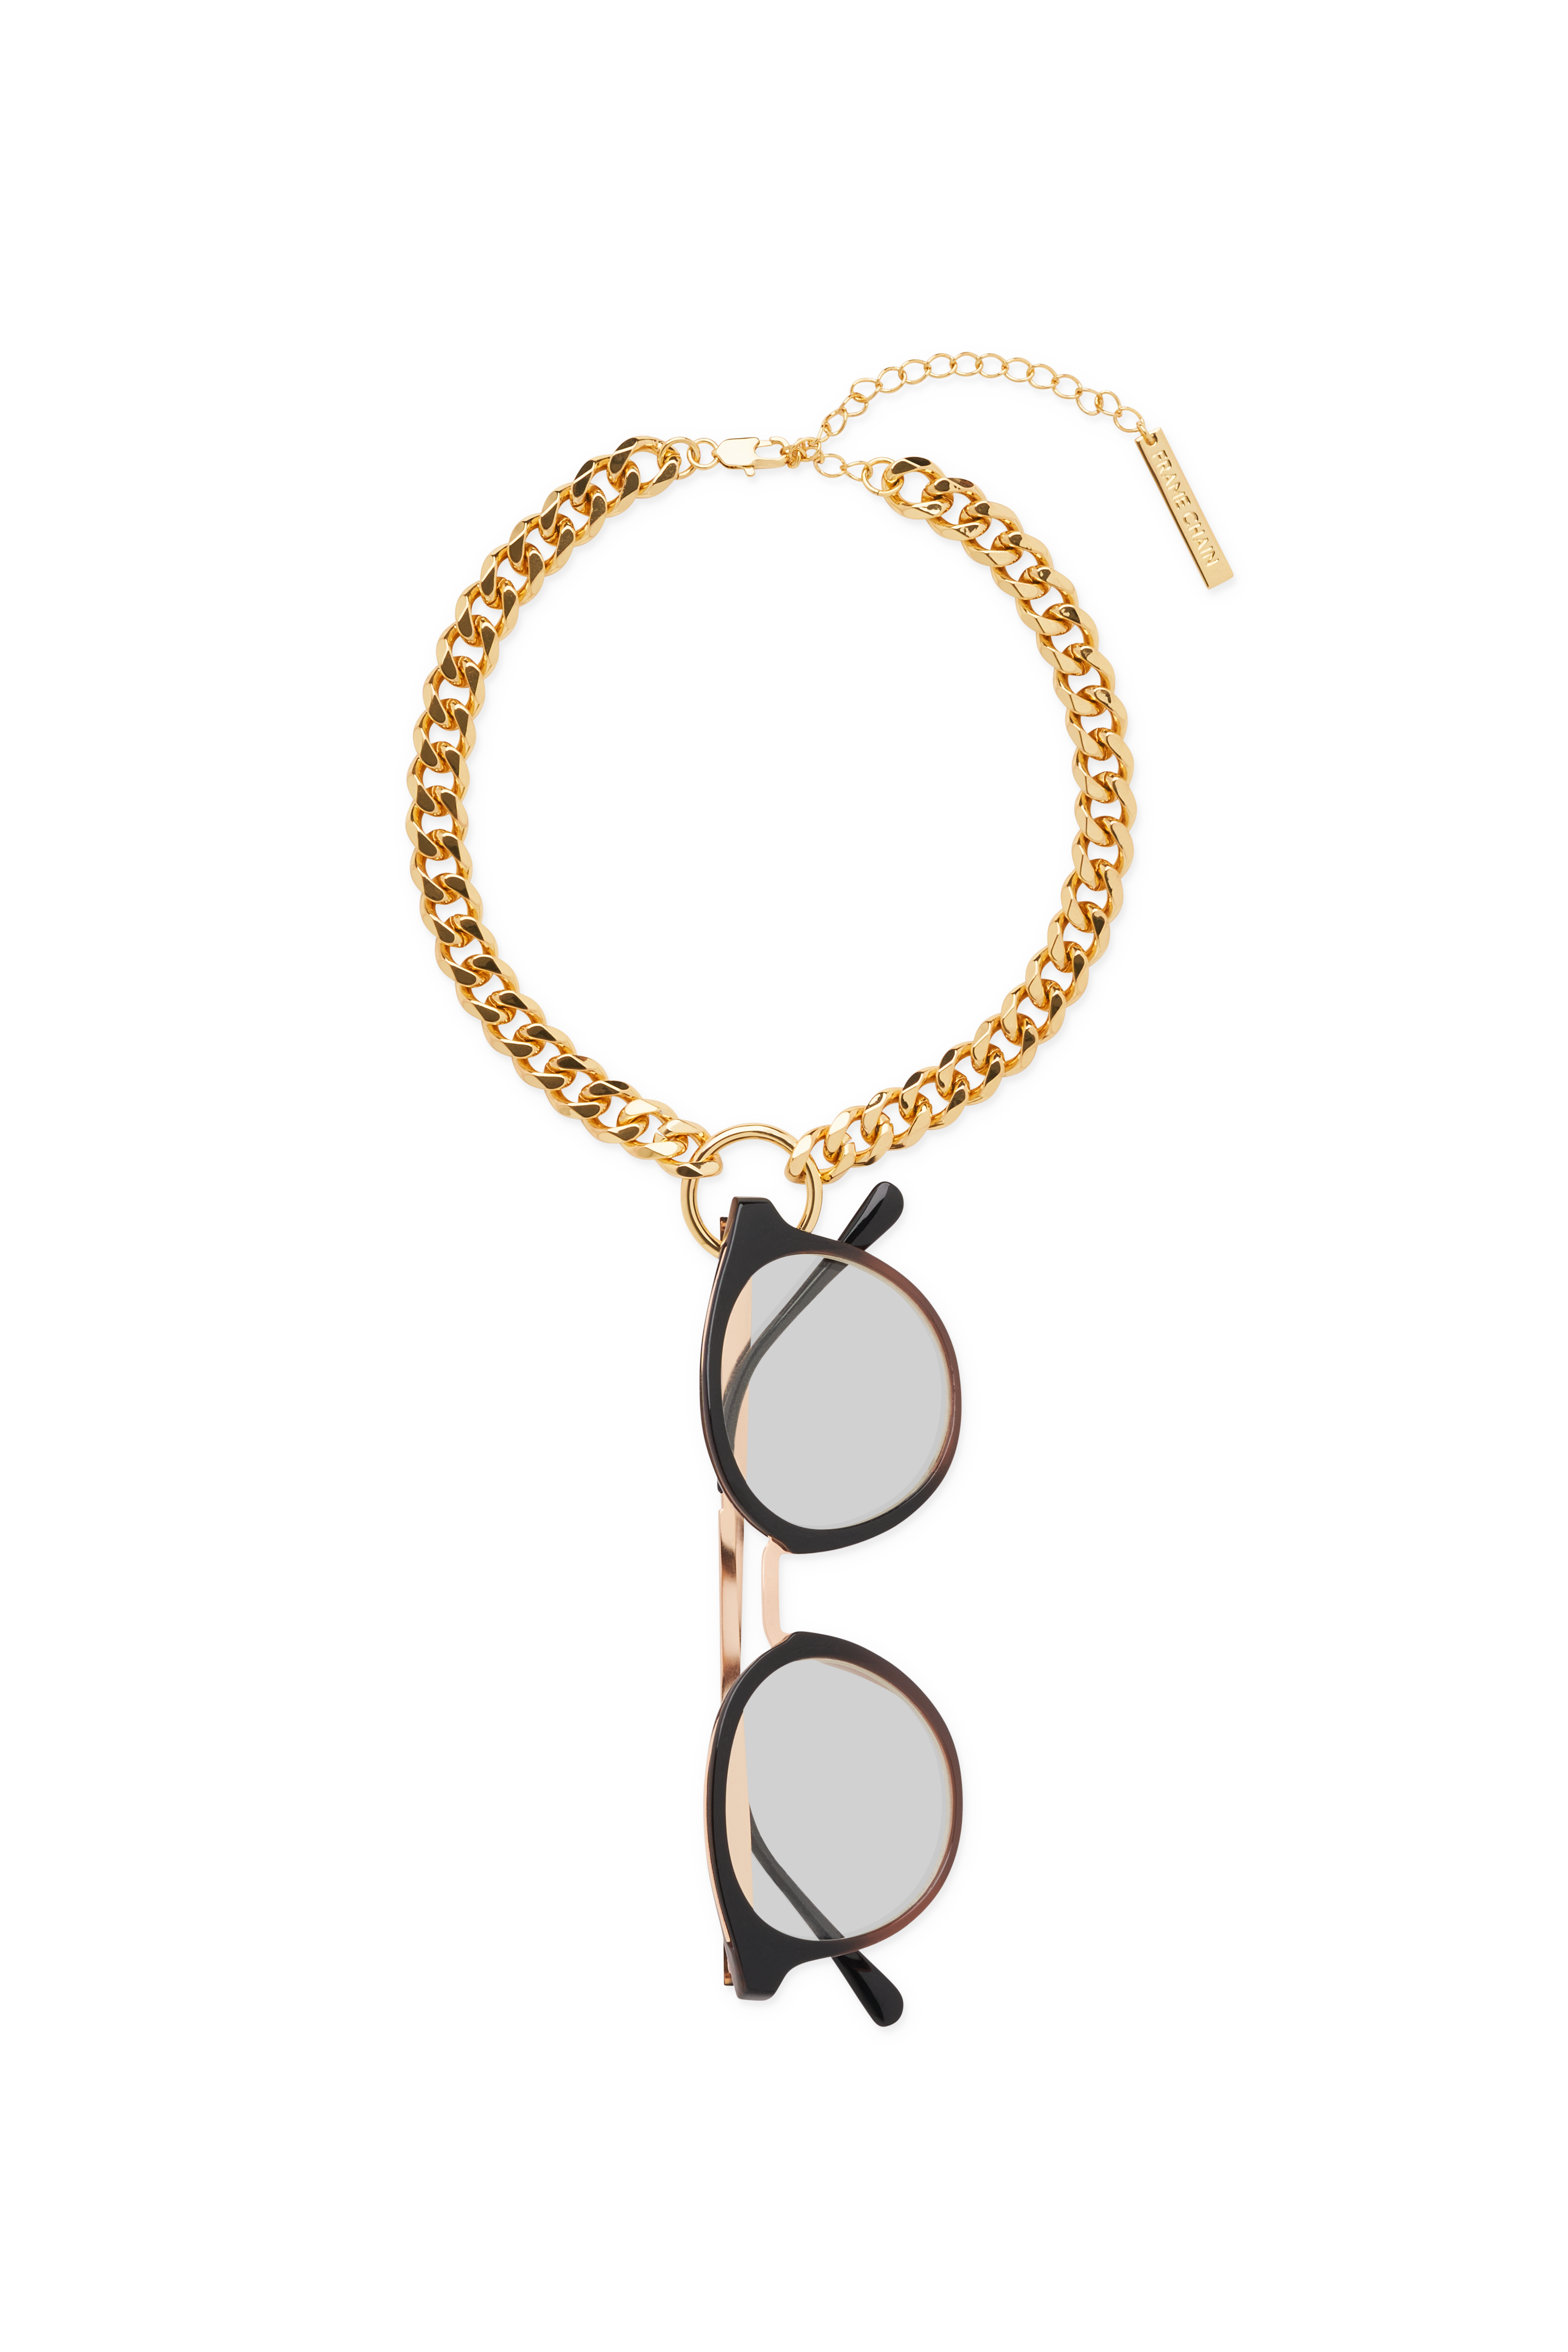 FRAME CHAIN | HOOKER DIAMOND in YELLOW GOLD | Glasses Chains | Eyewear Chains